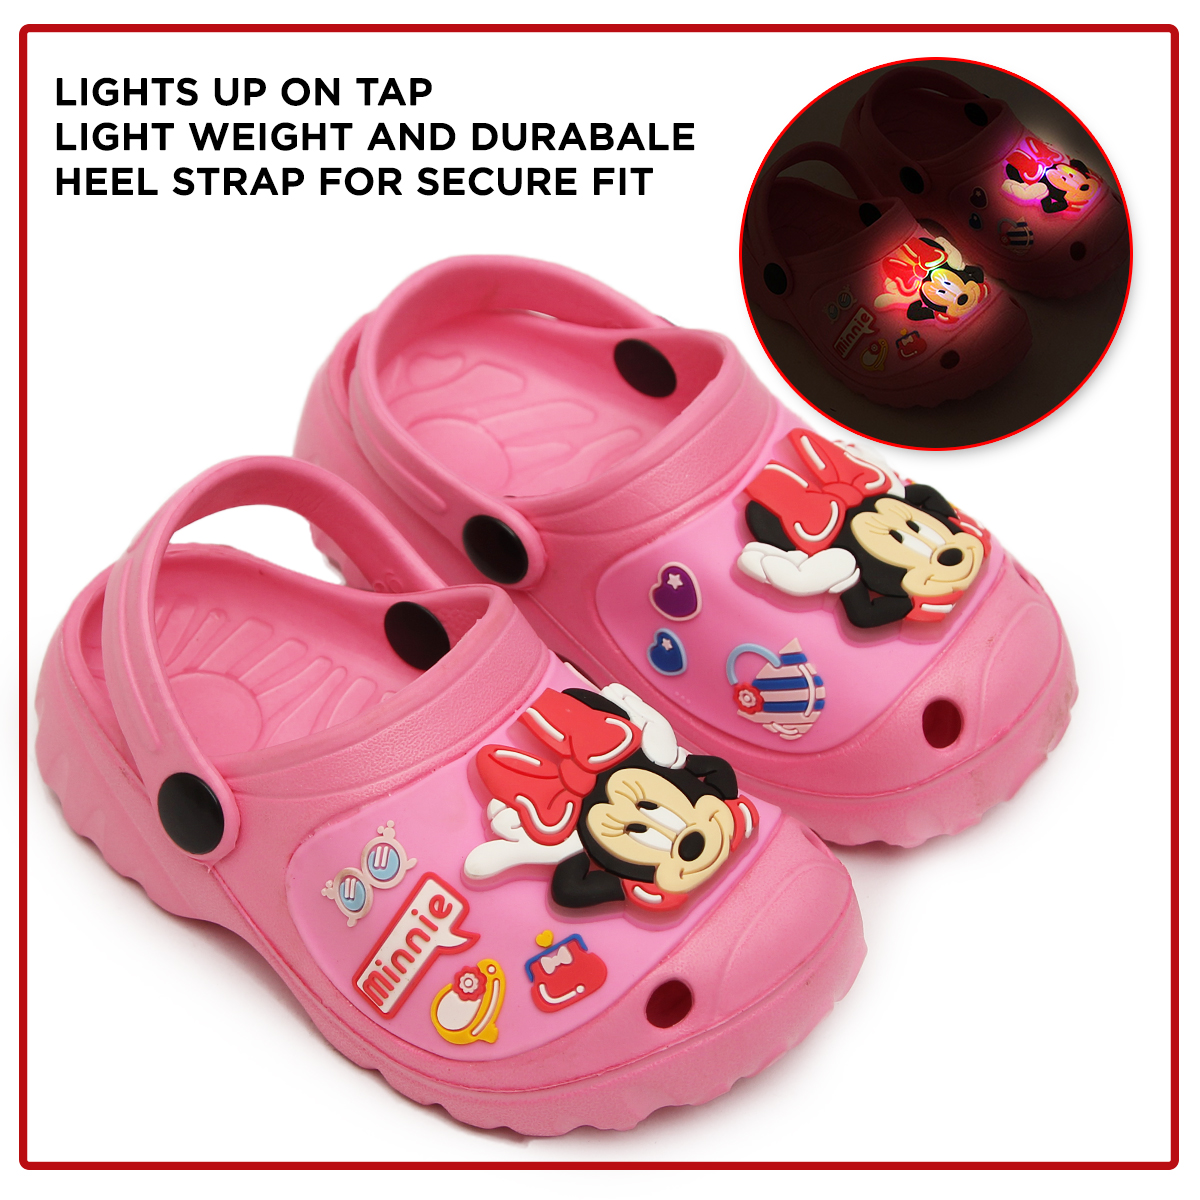 Minnie Light Up - Clog - 108 - Pink Summer Crocs Clog Slippers Sandals & Chappal For Your Kids - Non Slip Sandals Easy to Wear